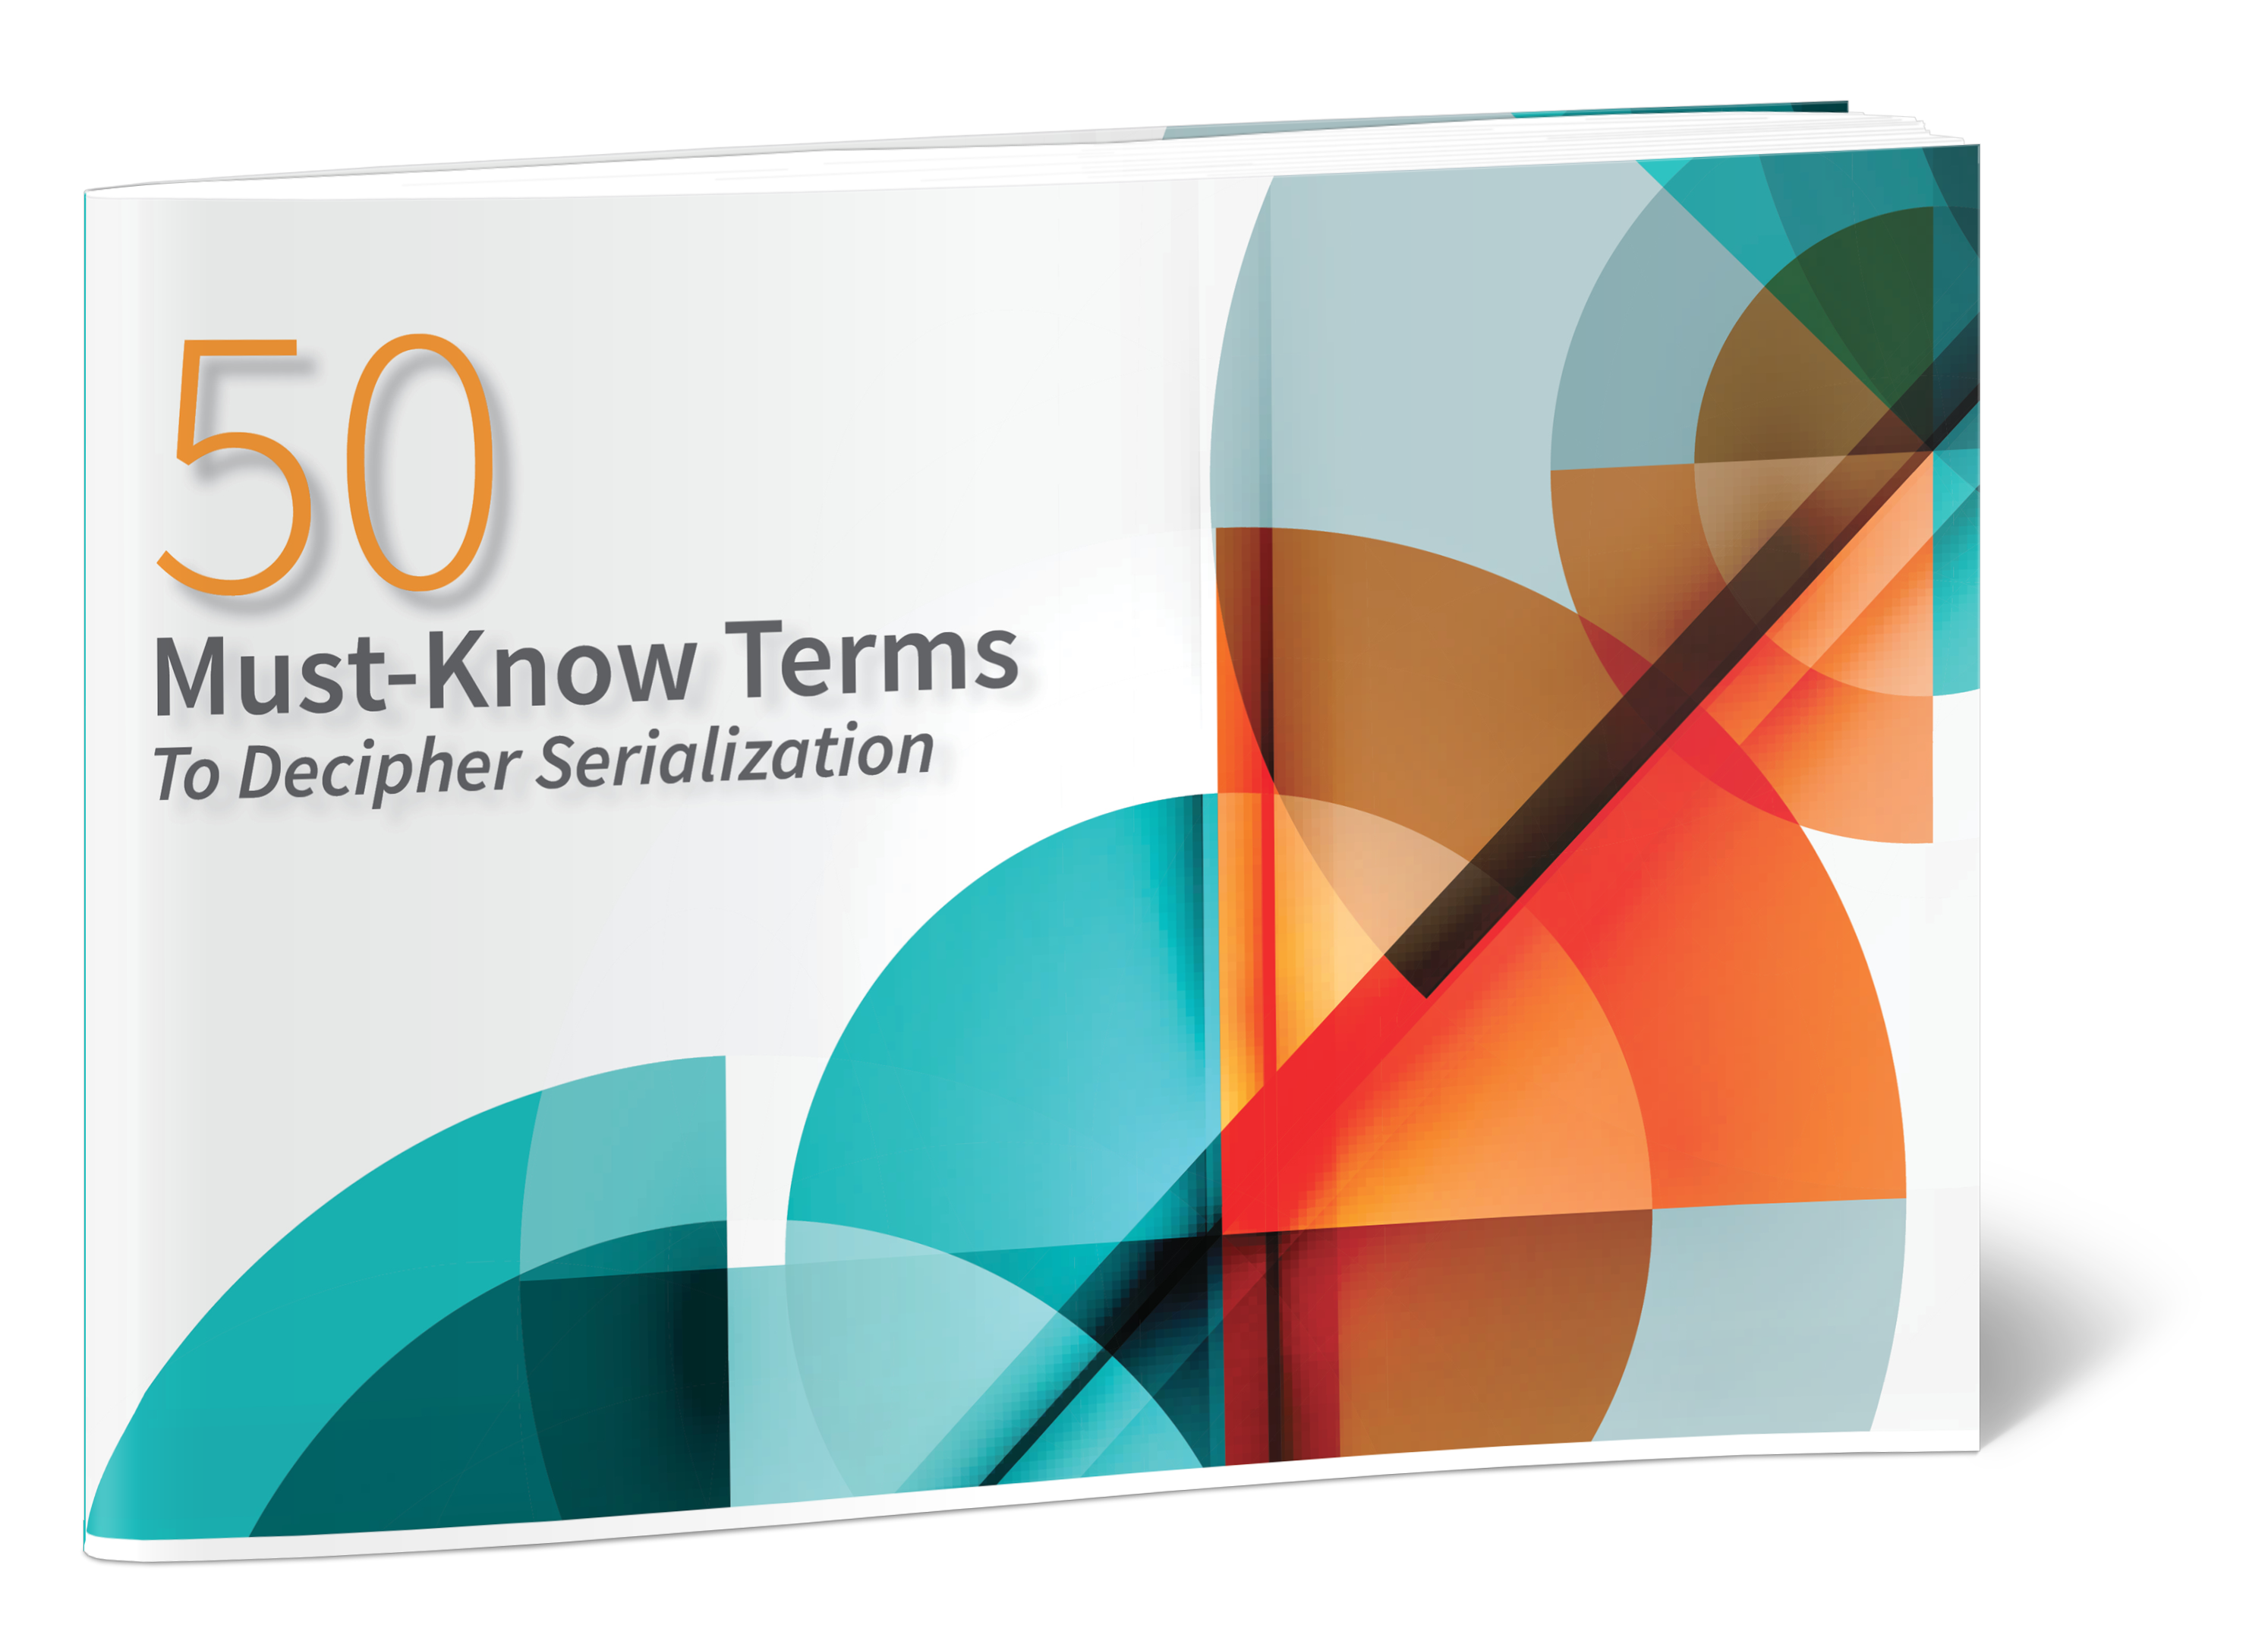 50 Must-Know Terms to Decipher Serialization